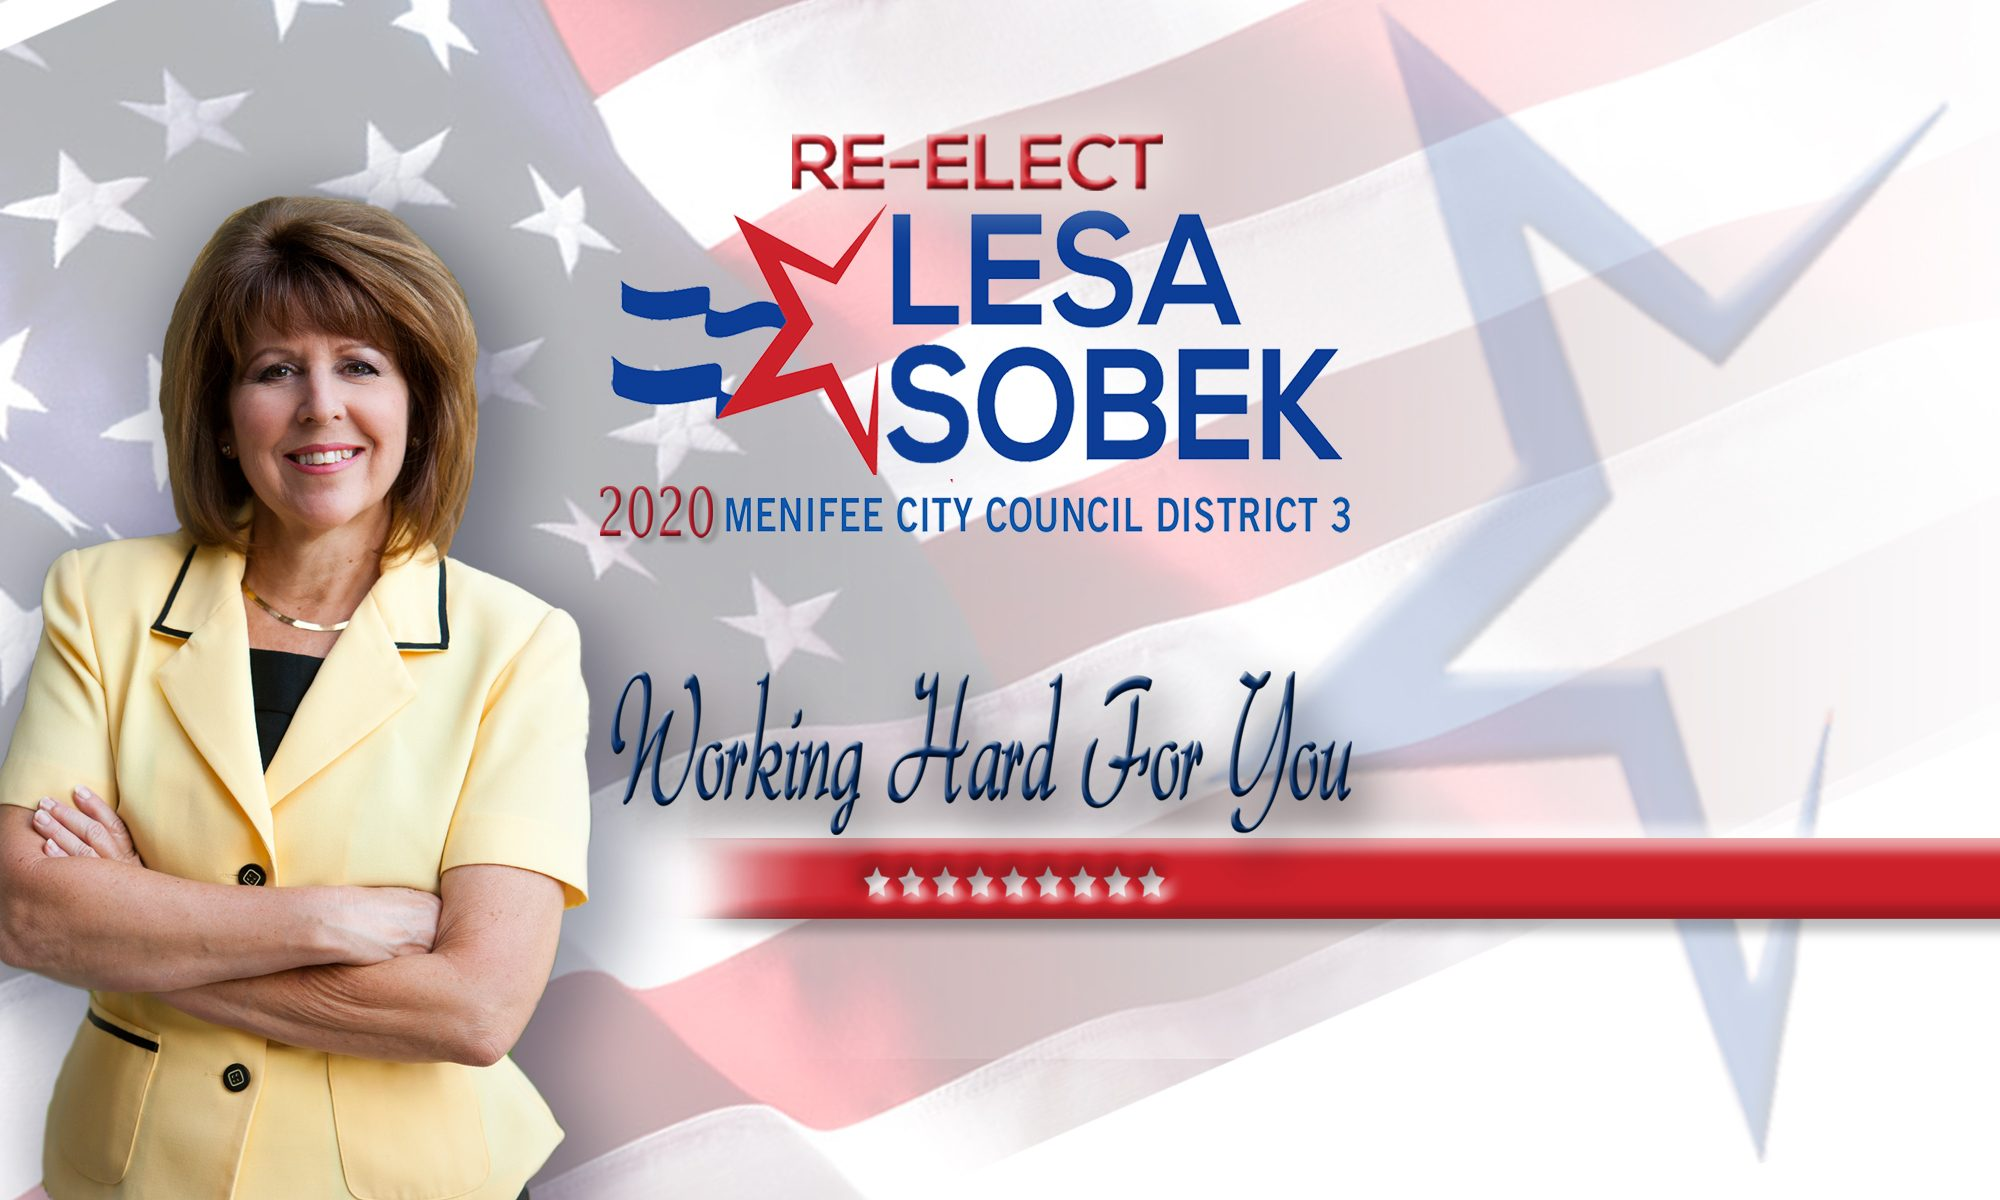 Lesa Sobek for Menifee City Council 2020